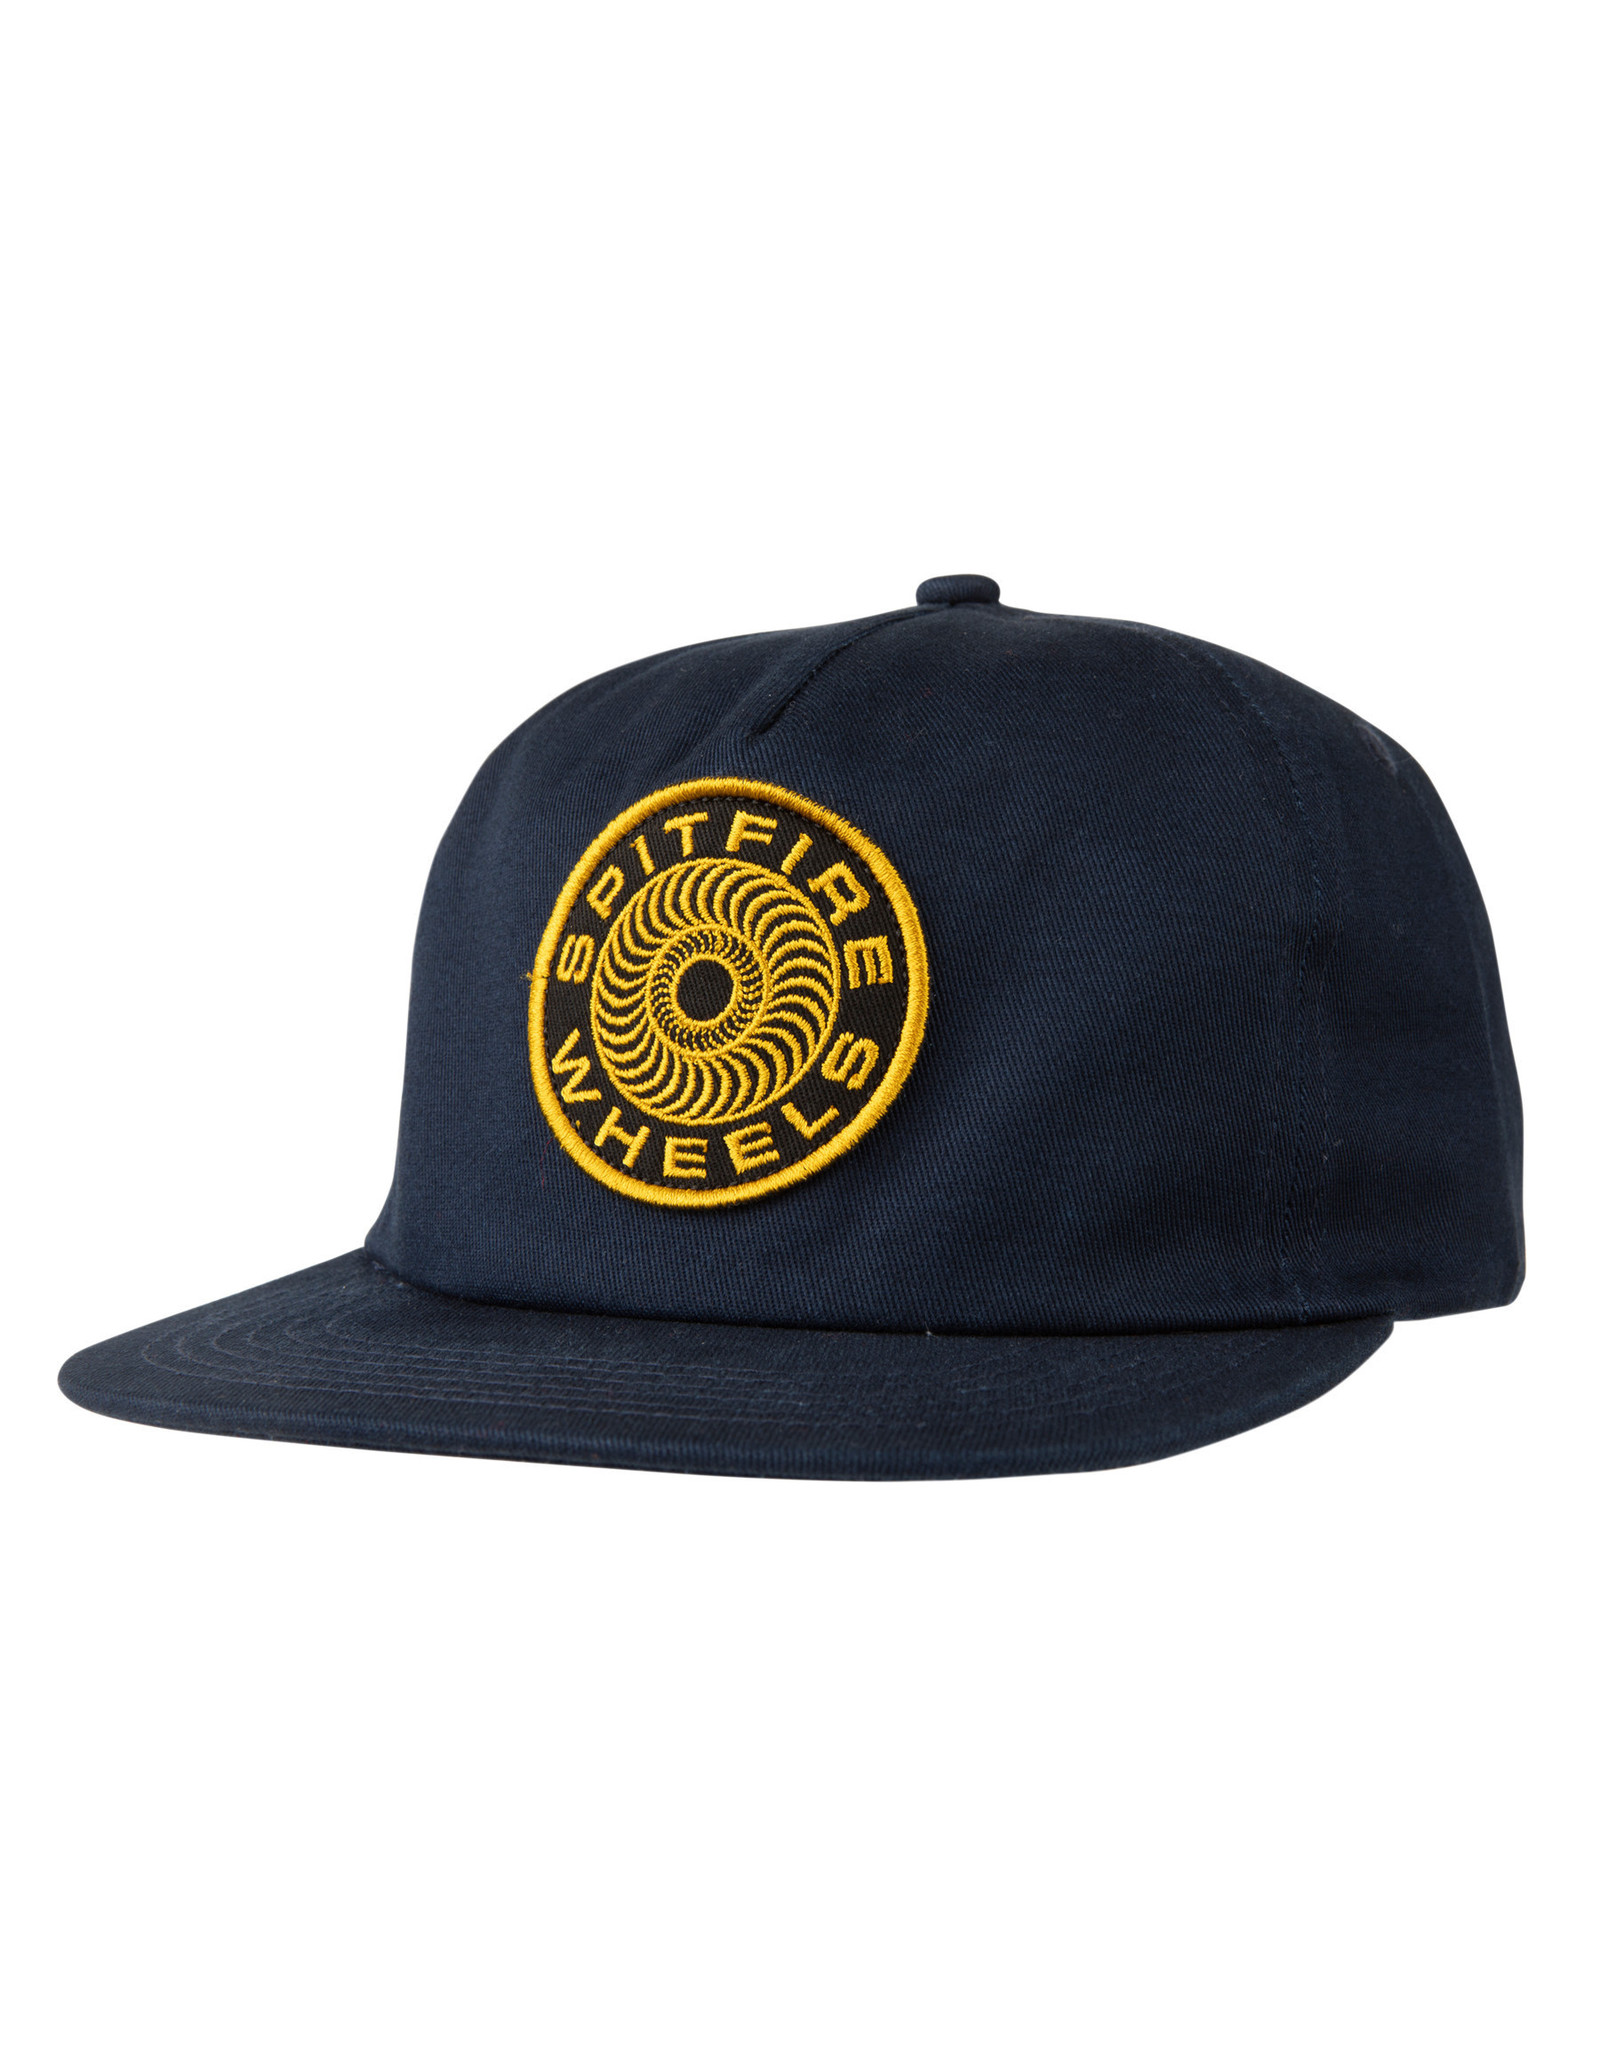 SPITFIRE SPITFIRE - CLASSIC 87 SWIRL PATCH HAT NAVY/YELLOW